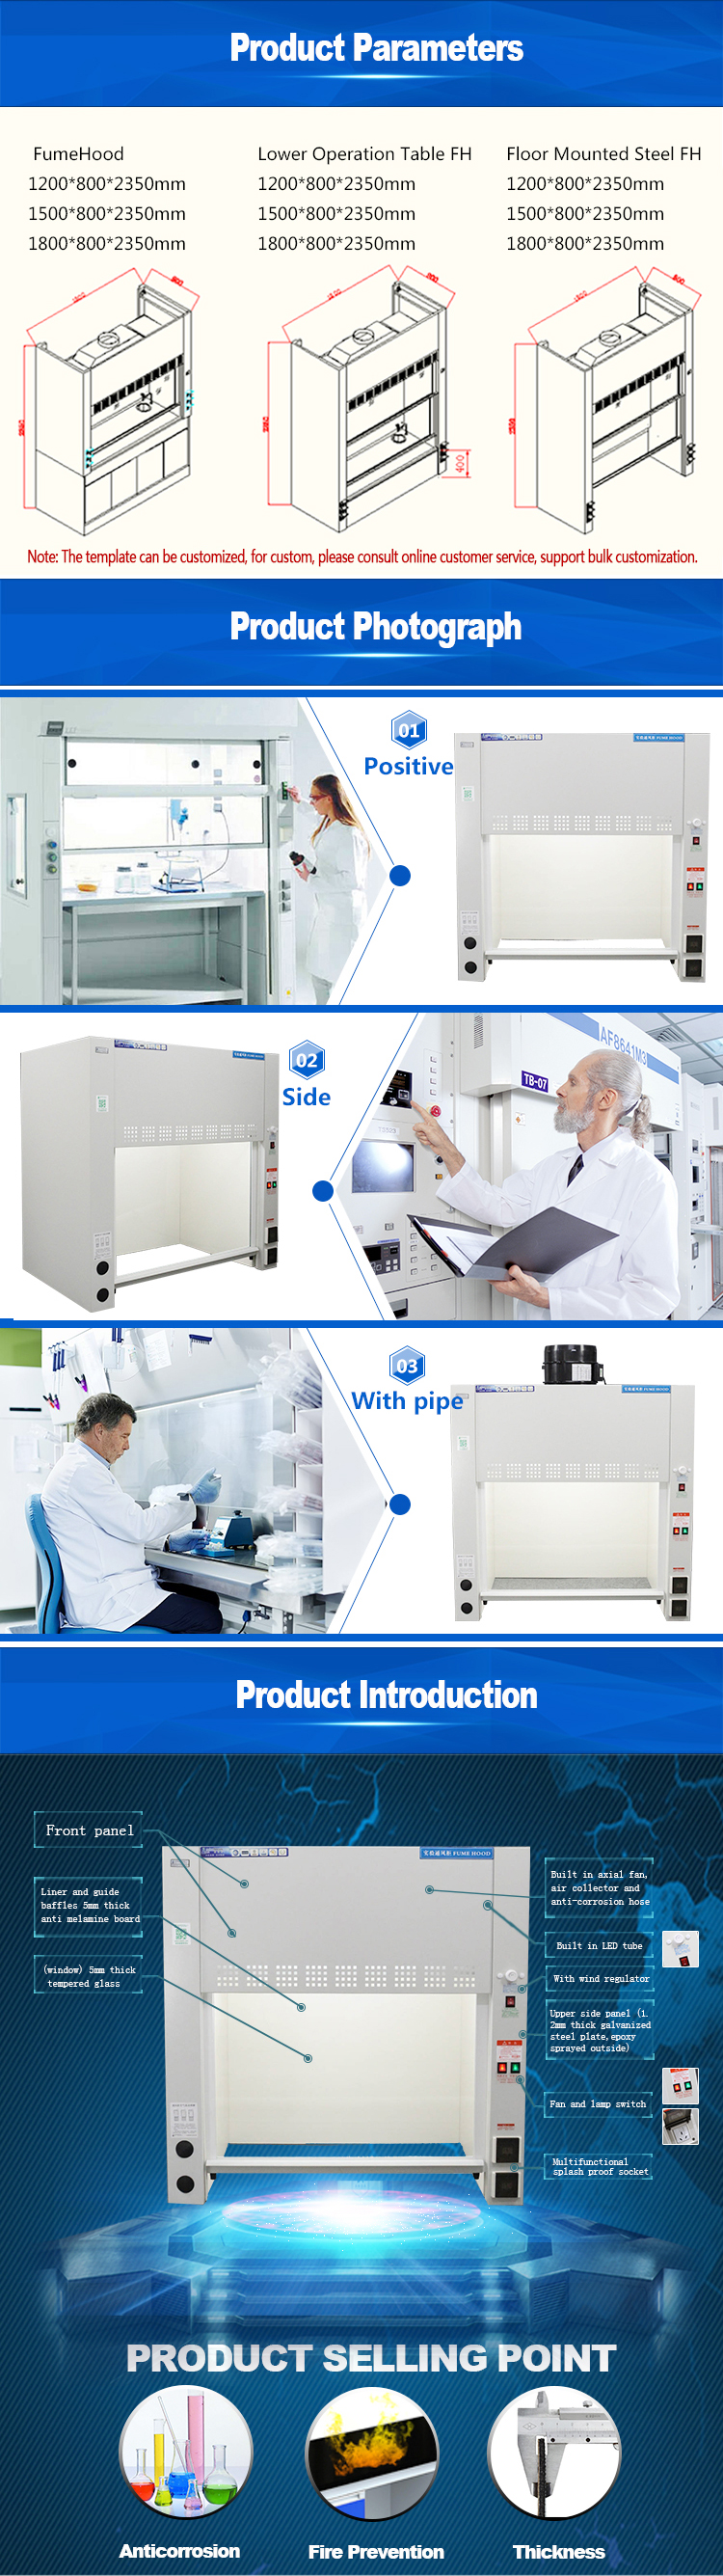 All steel structure desktop fume extractor Lab chemistry biotechnology laboratory equipment